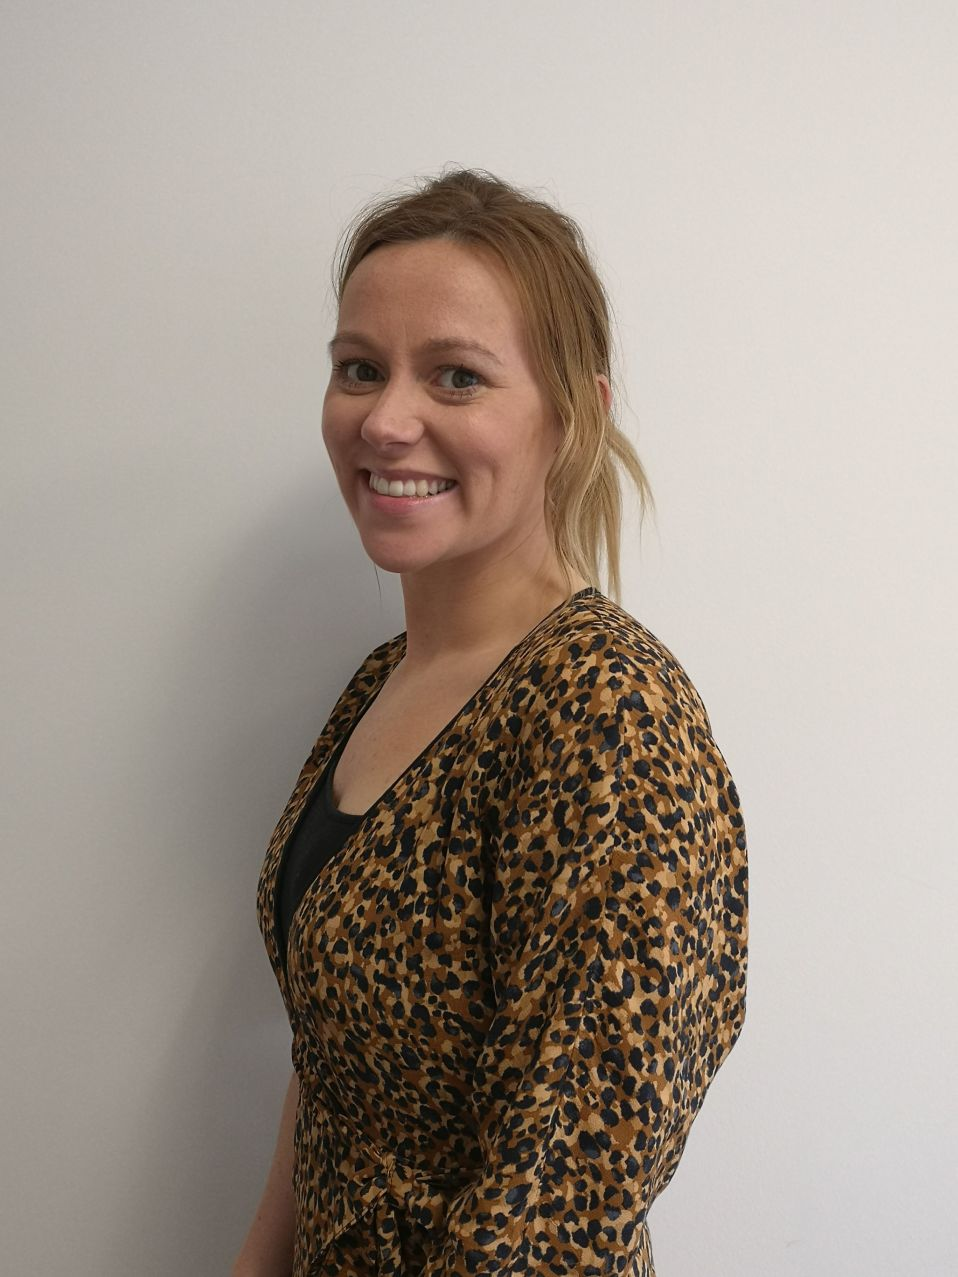 Scotland fundraising manager Emma McGeever